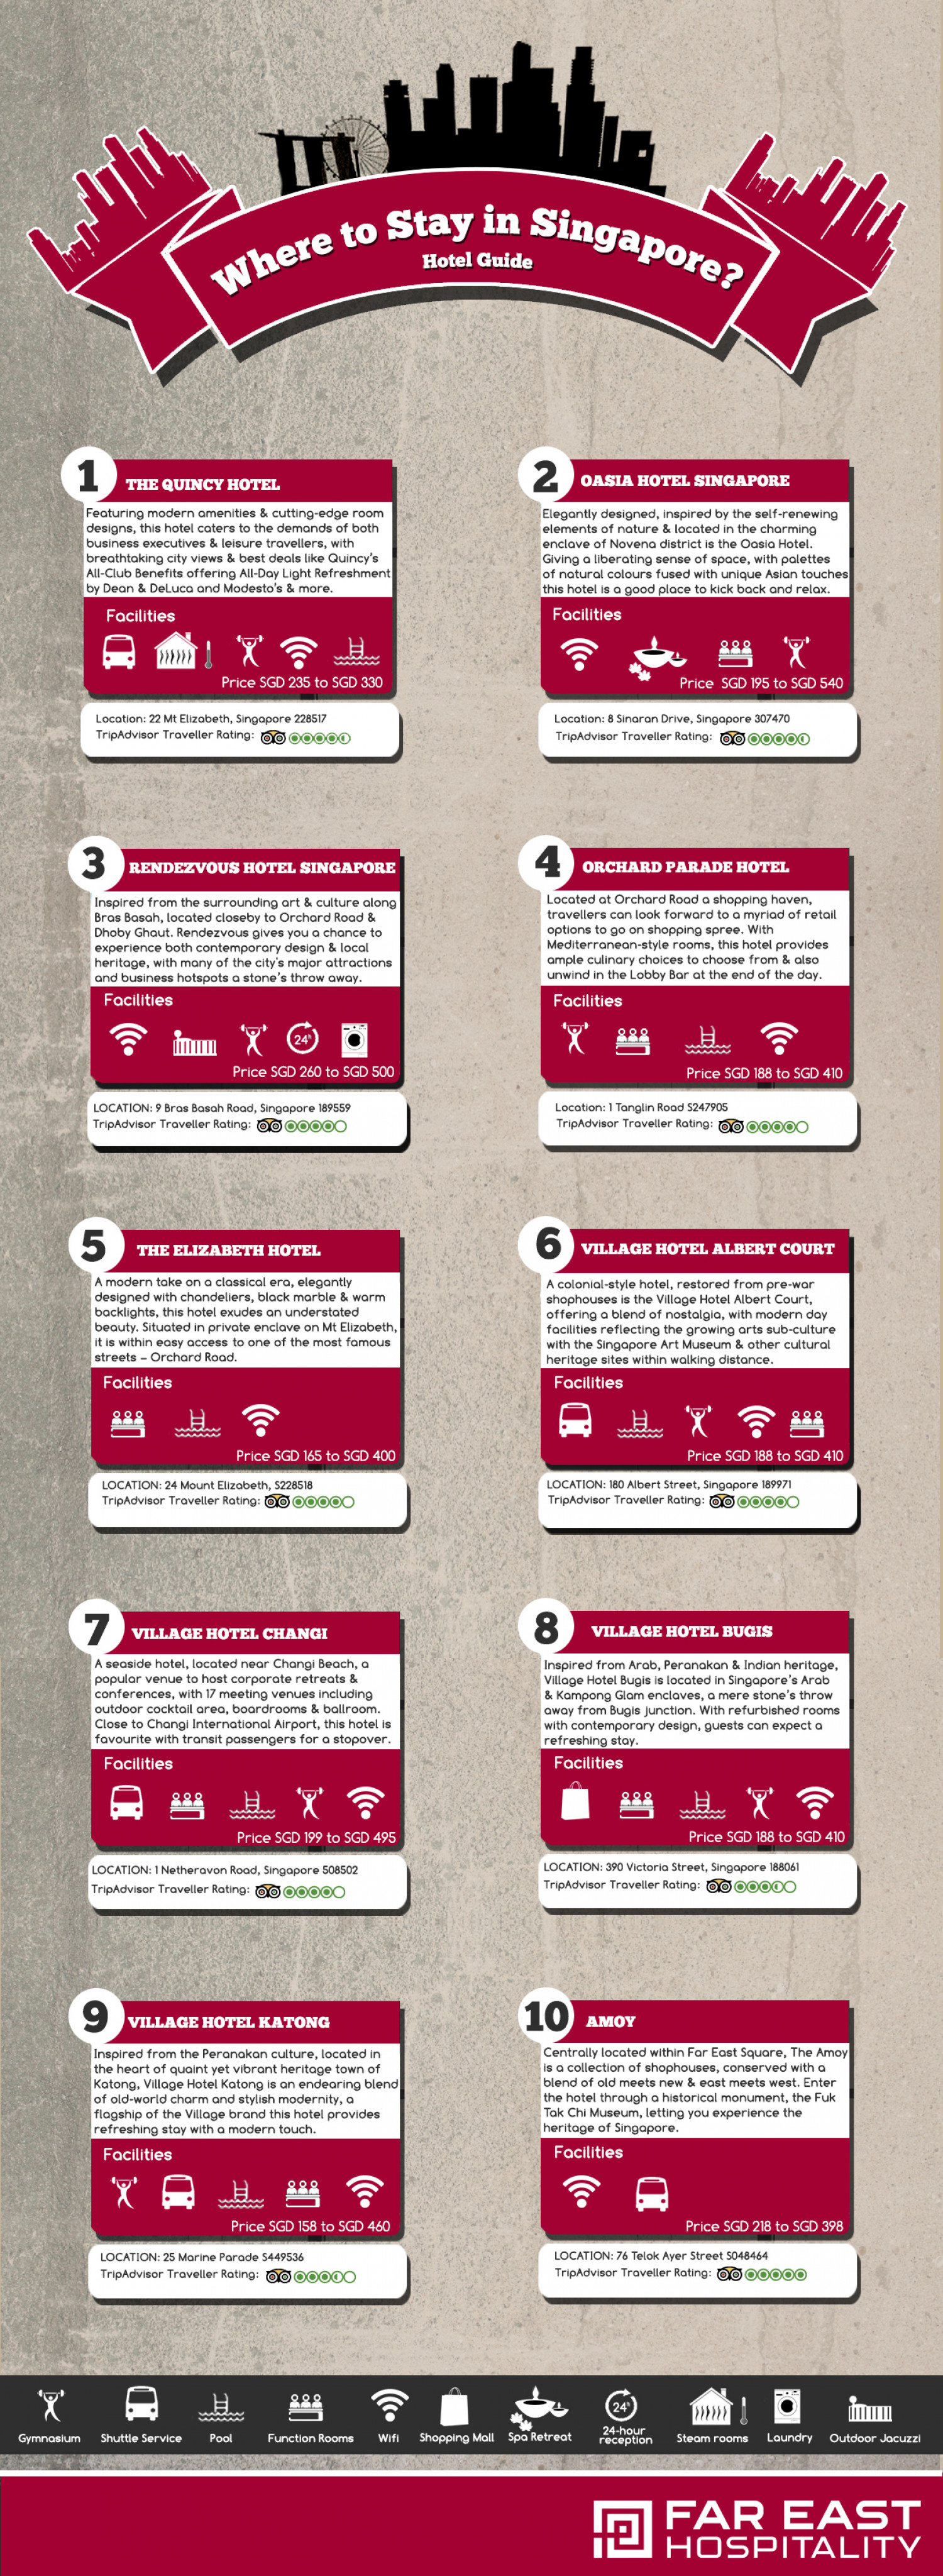 Where to Stay in Singapore? Infographic